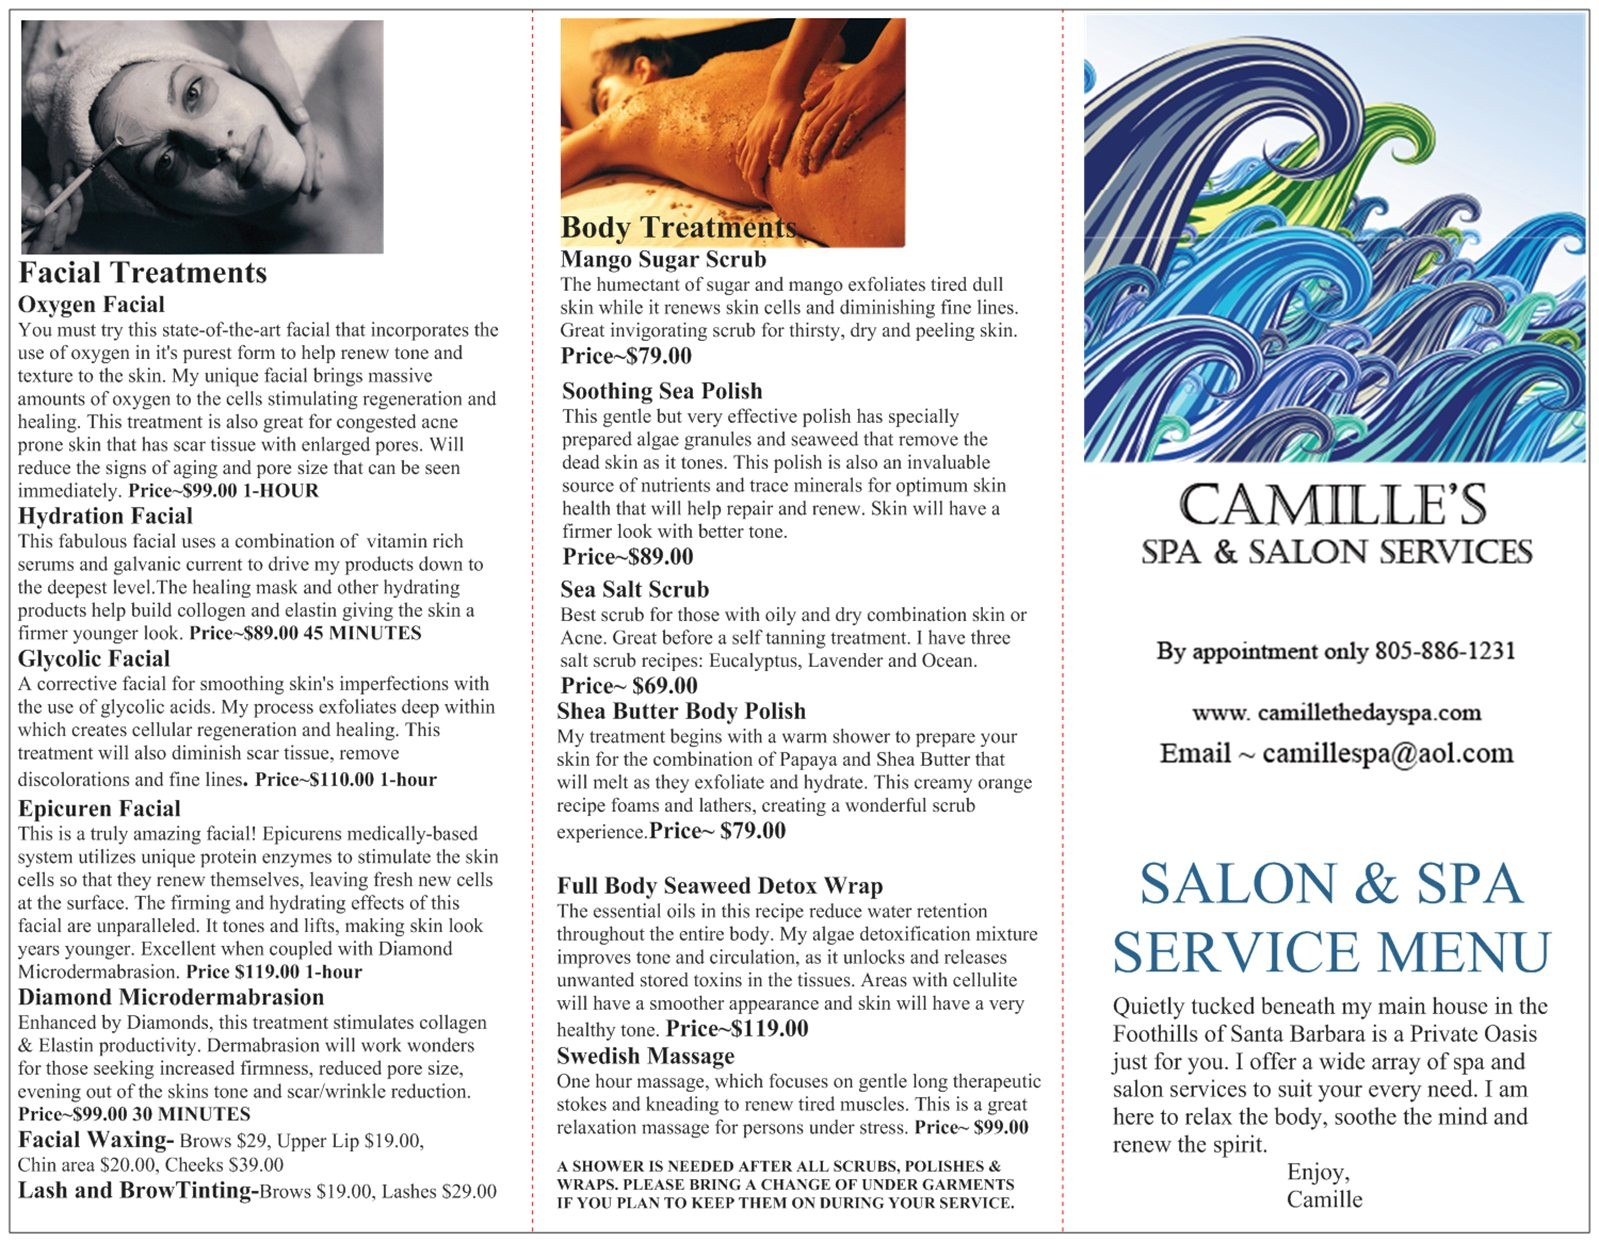 Camille's Spa & Salon Services